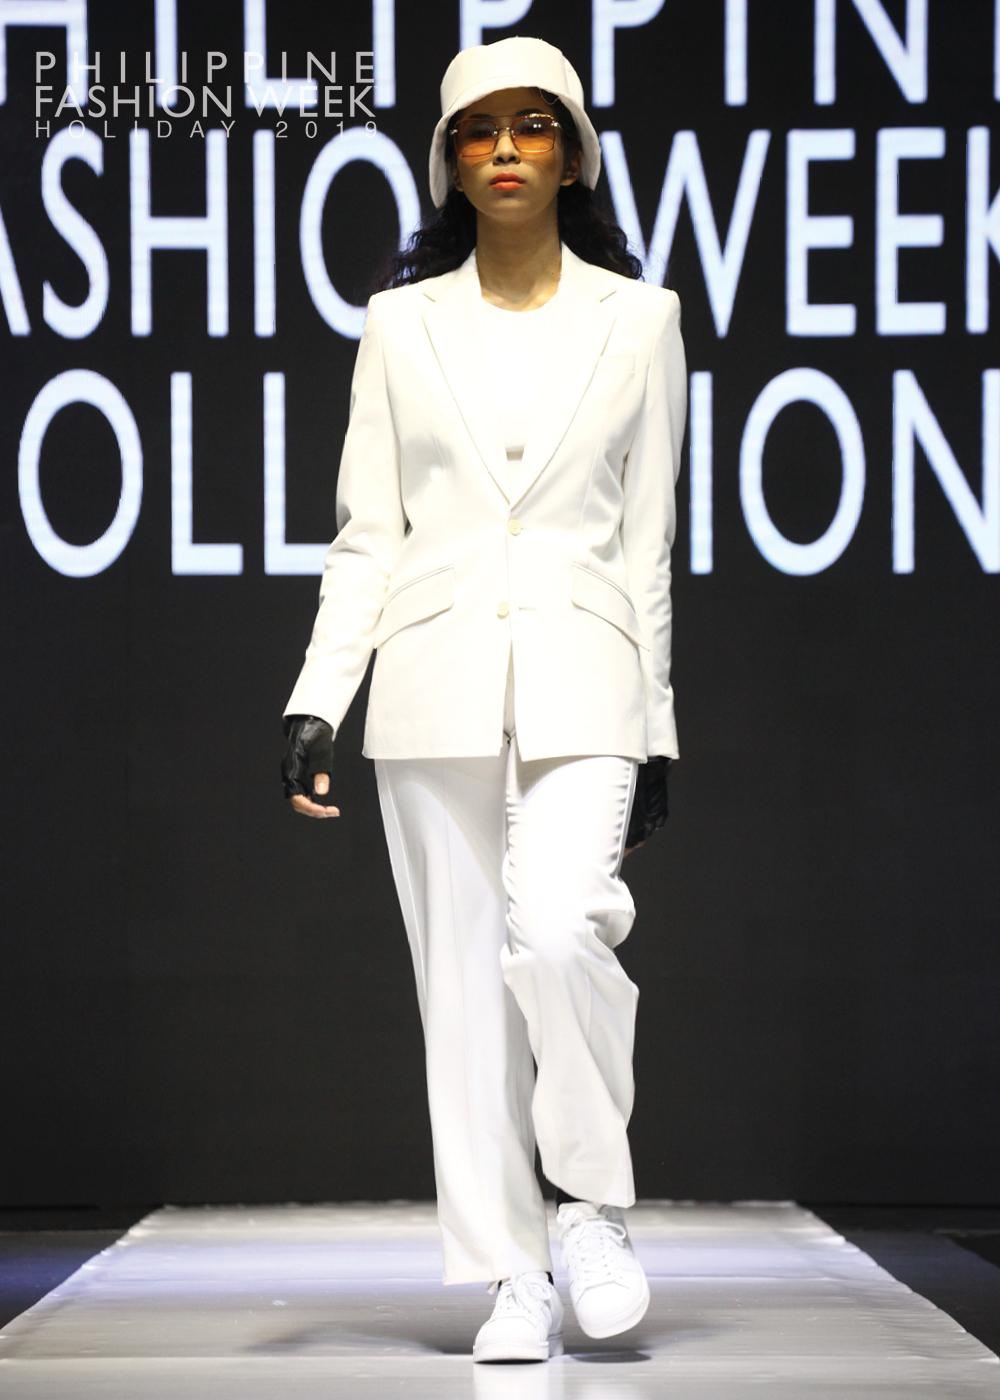 PhFW_collection show11.jpg